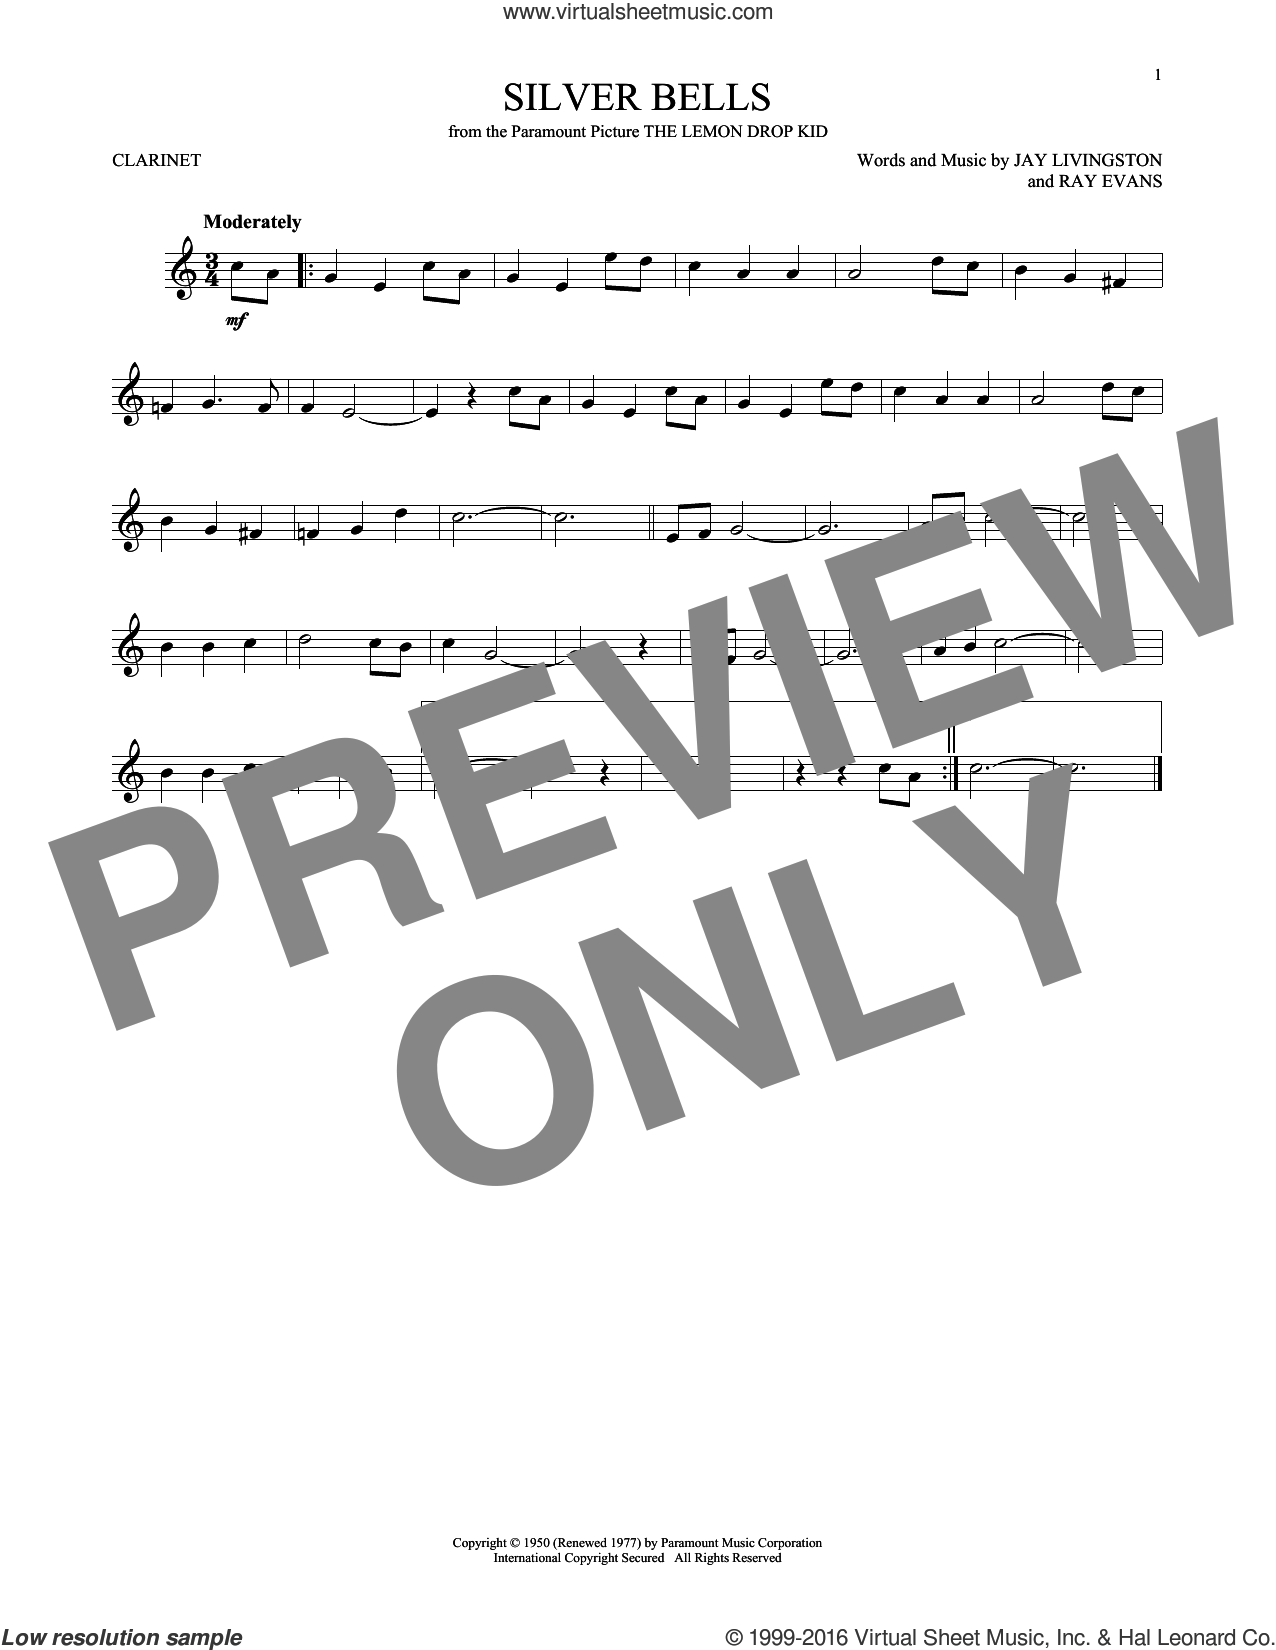 Silver Bells sheet music for clarinet solo by Ray Evans